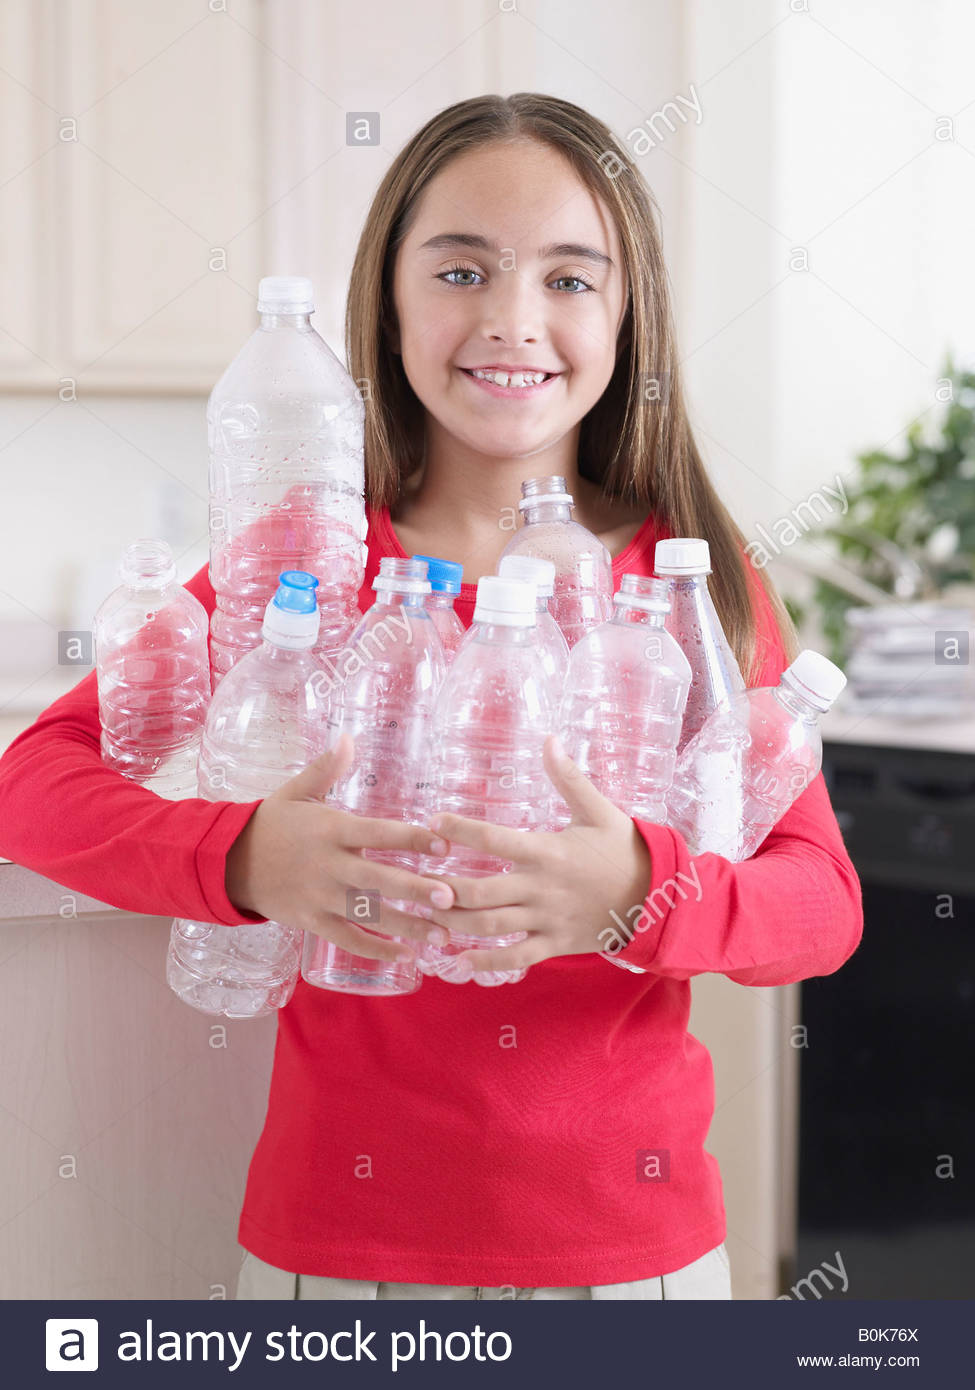 Young girl in kitchen with recyclable plastic bottles smiling - Stock Image